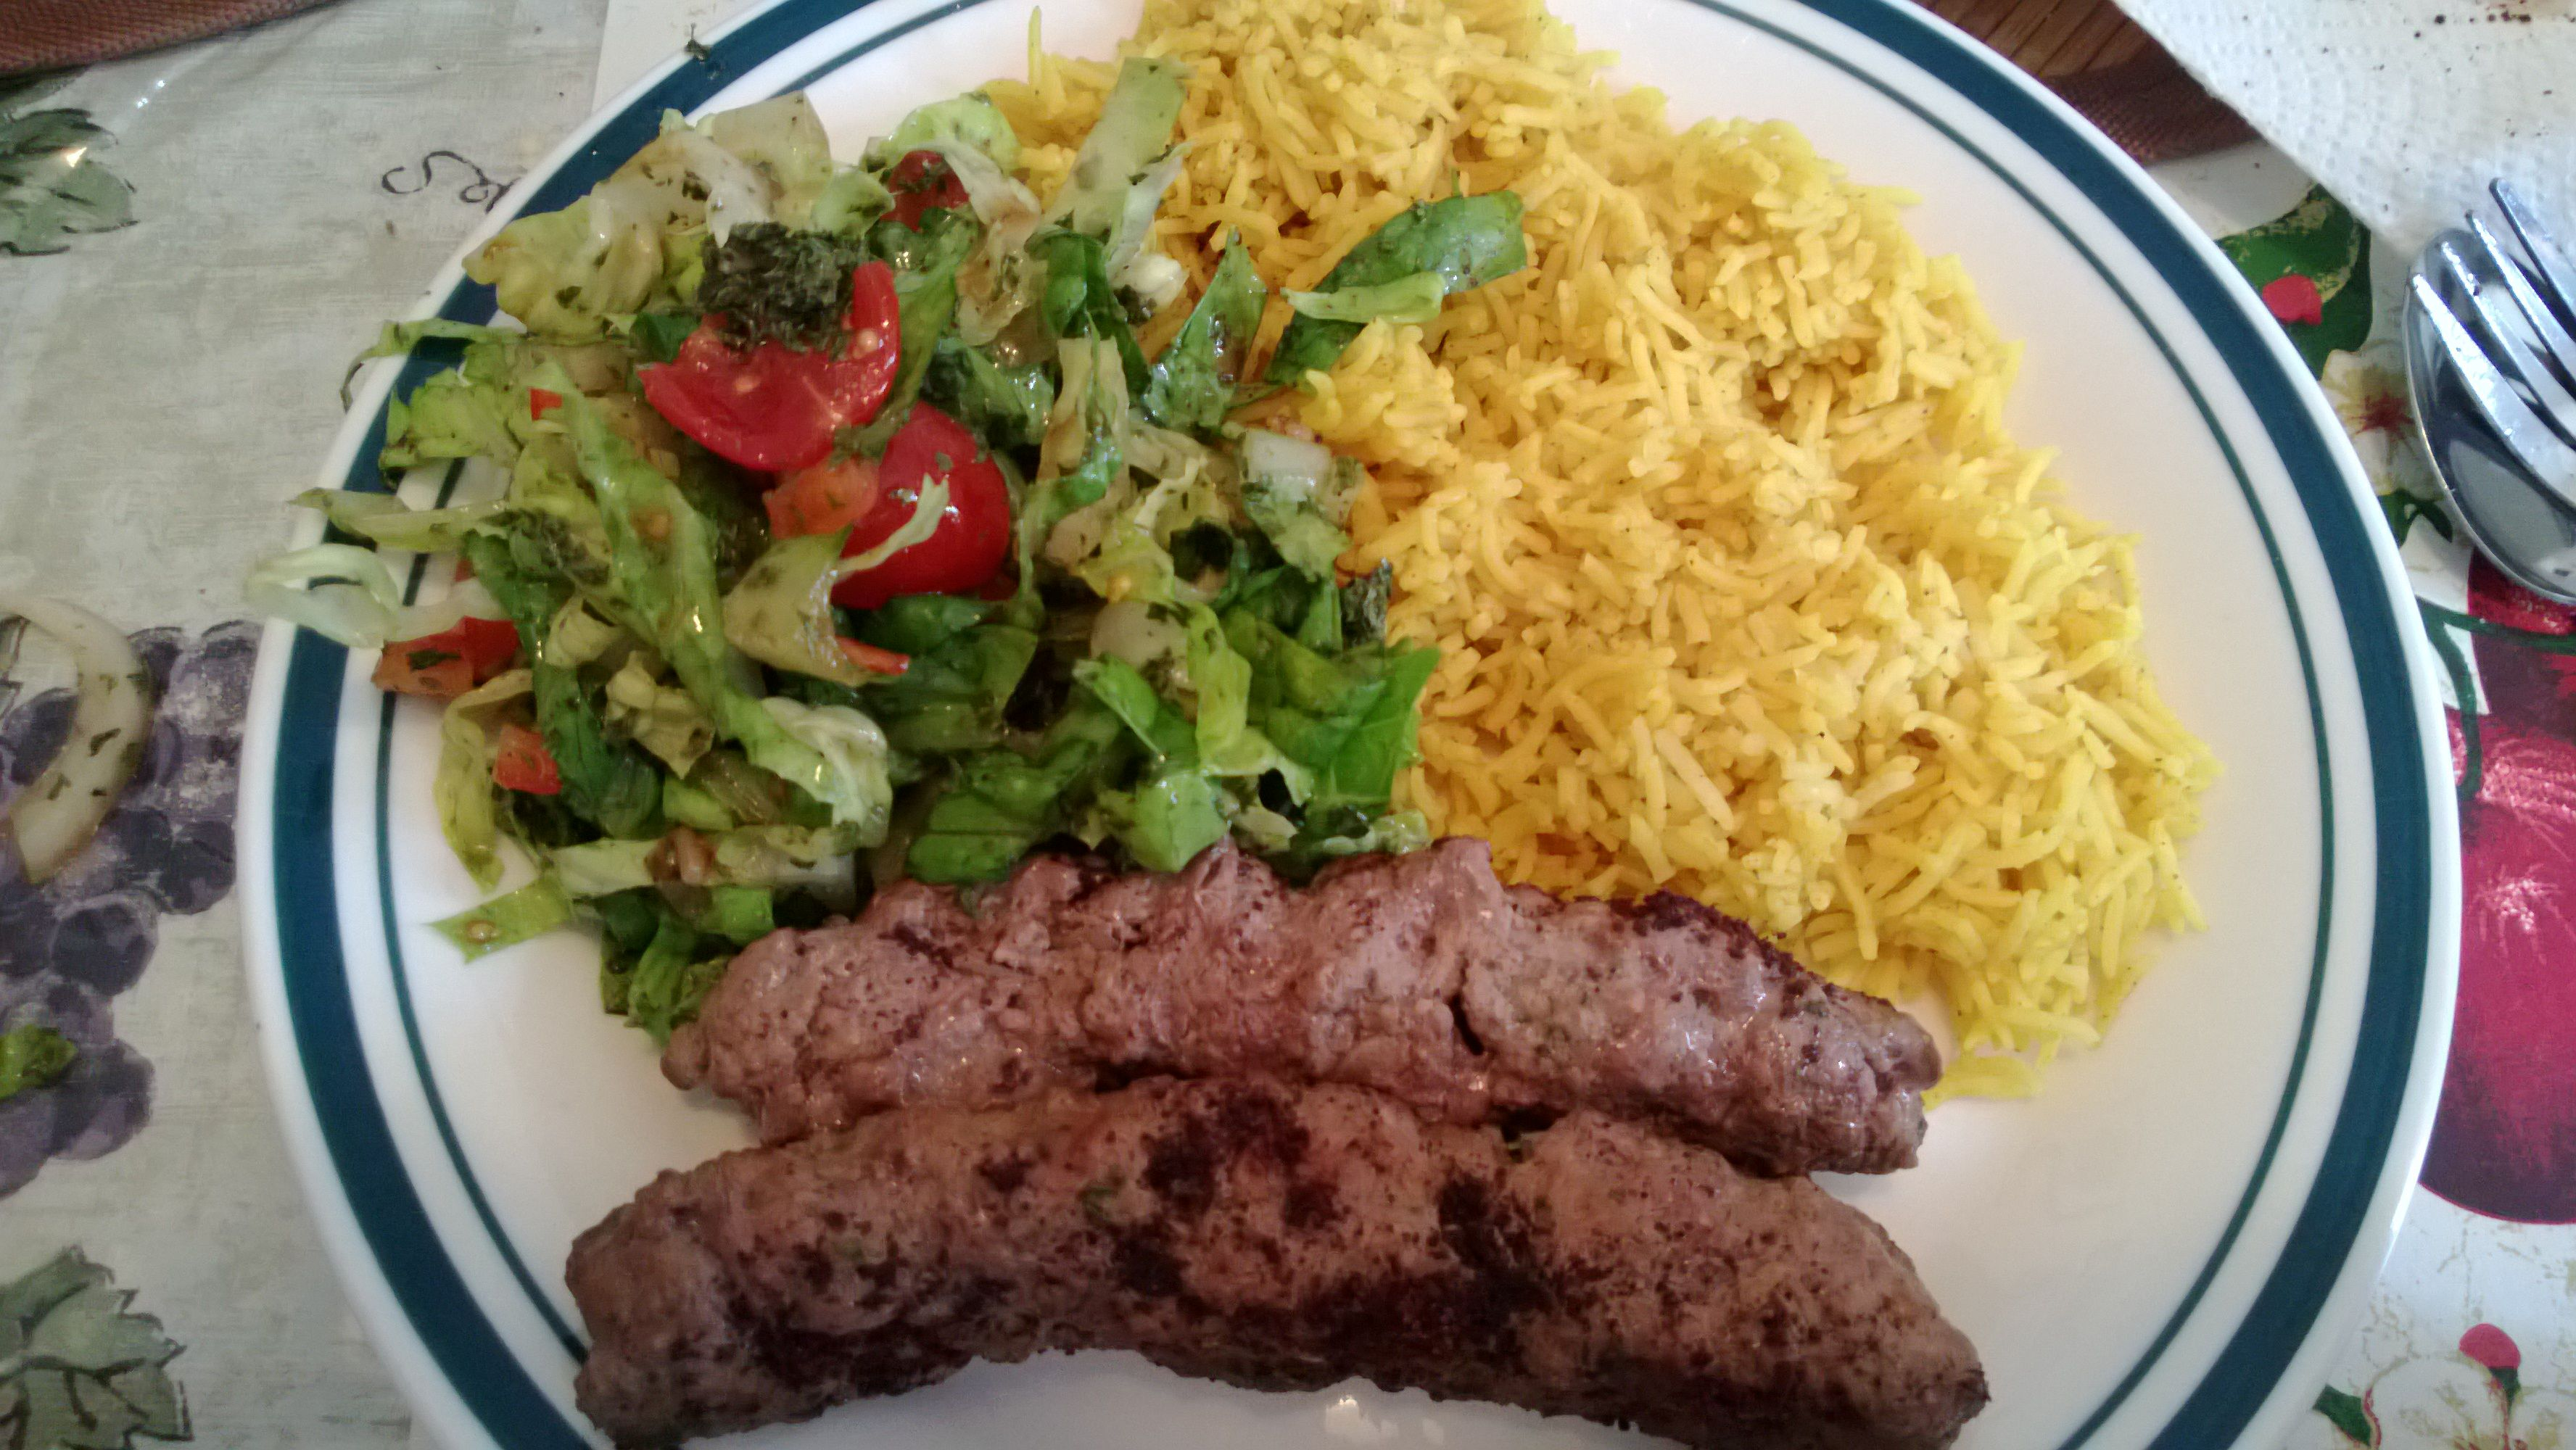 home made yellow rice , salad and grilled meat kofta.